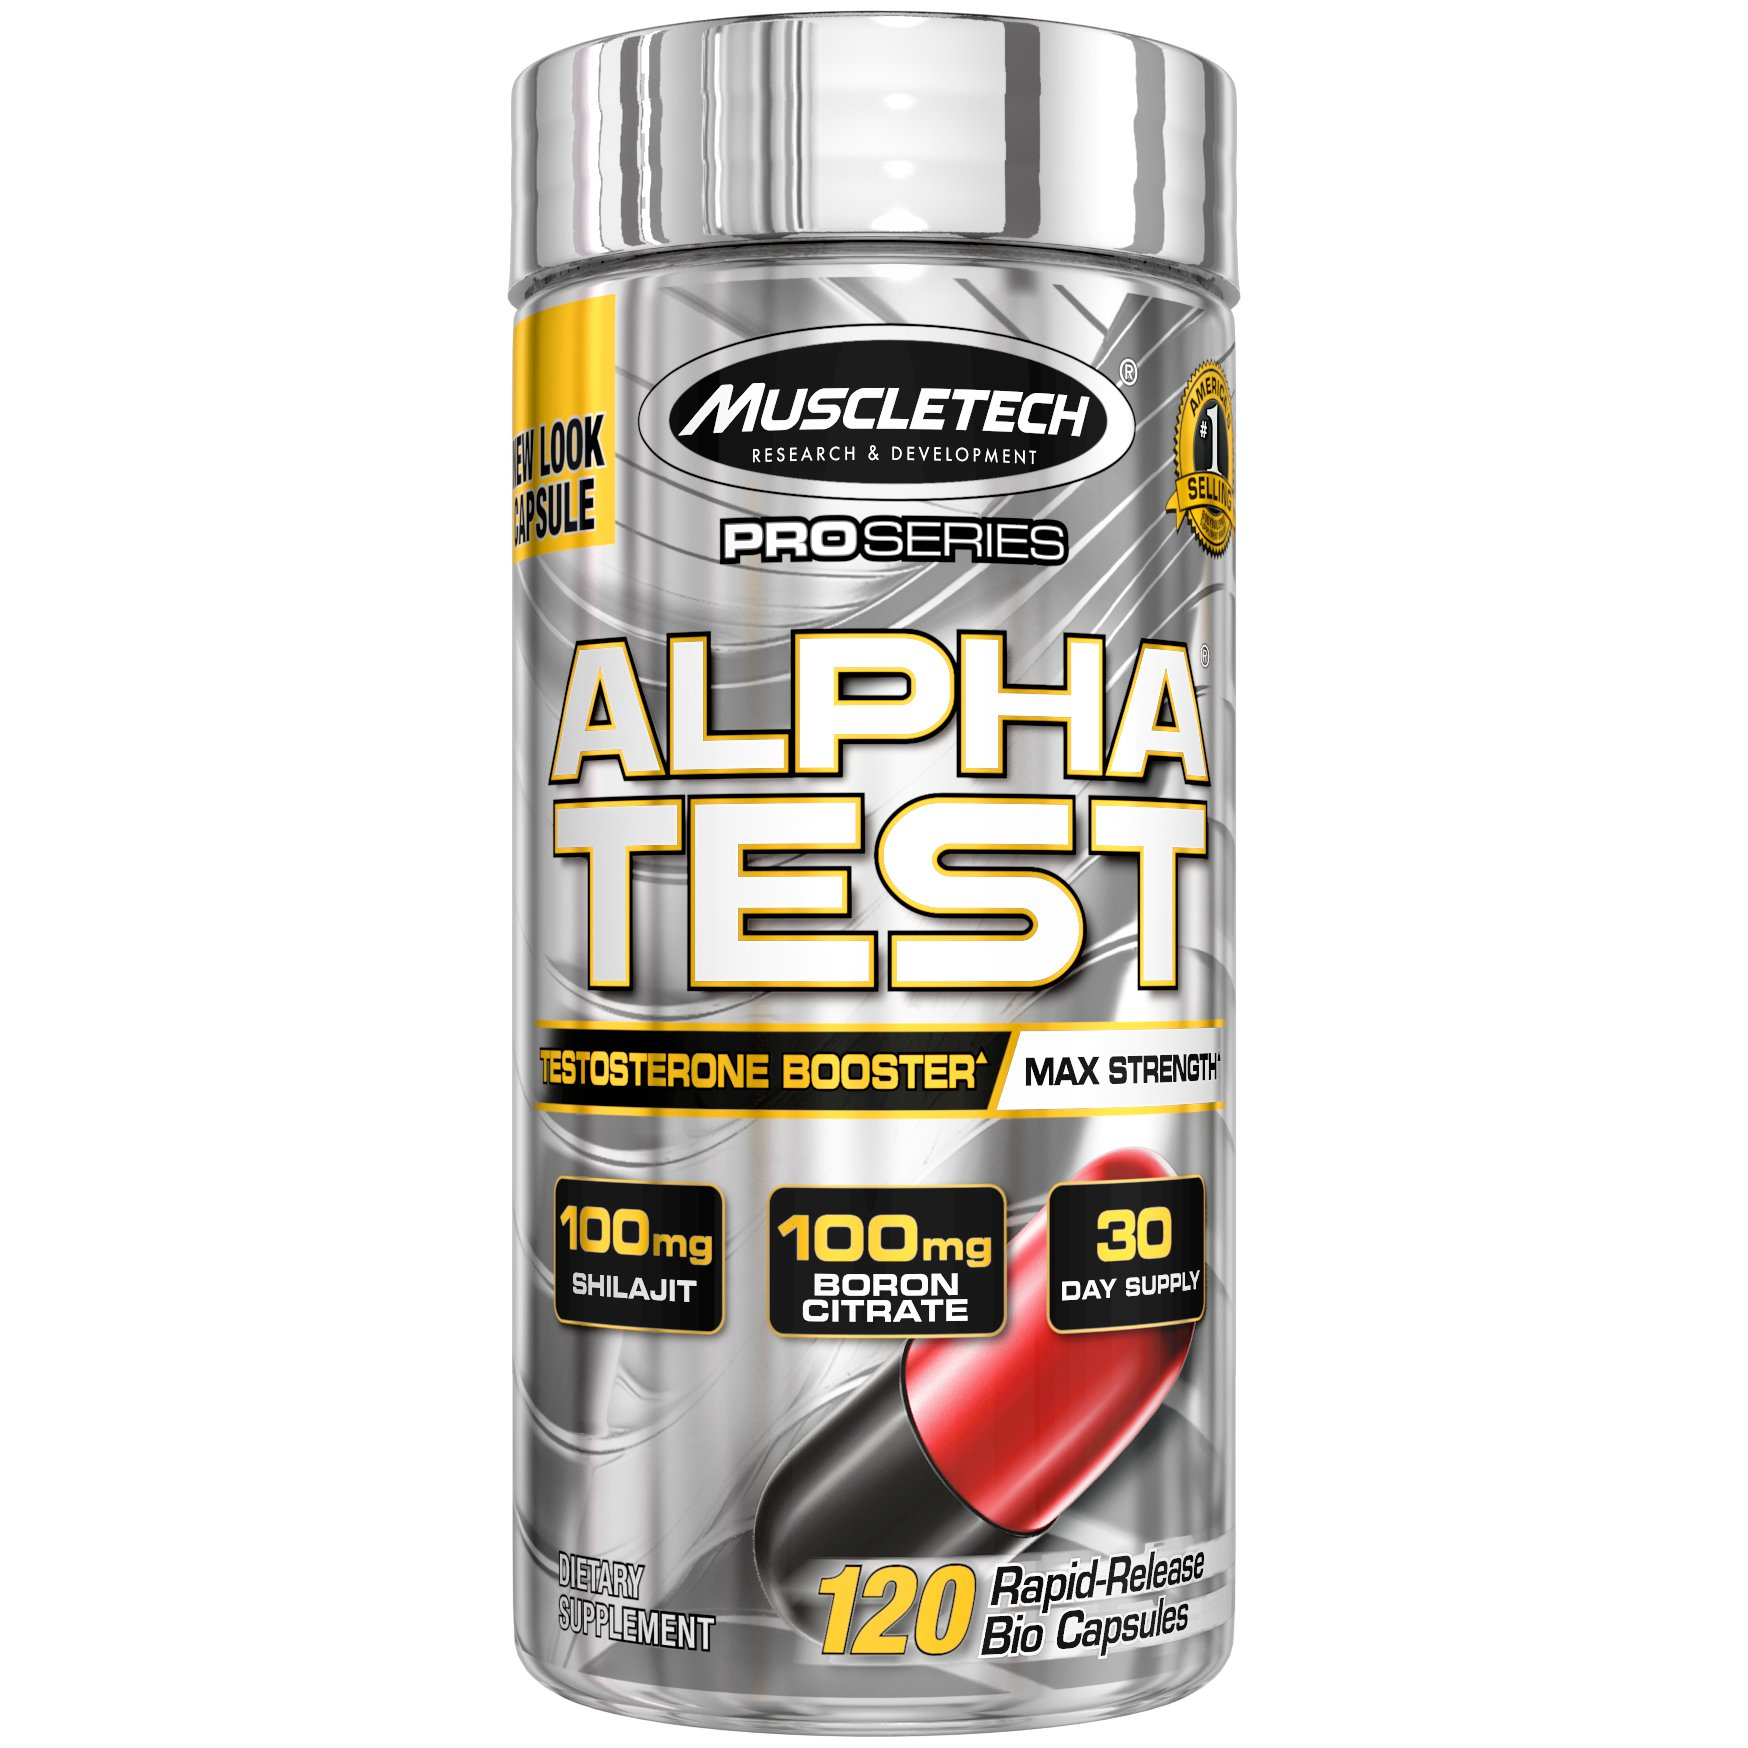 MuscleTech Pro Series AlphaTest, Max-Strength Testosterone Booster, 120 Rapid-Release Capsules